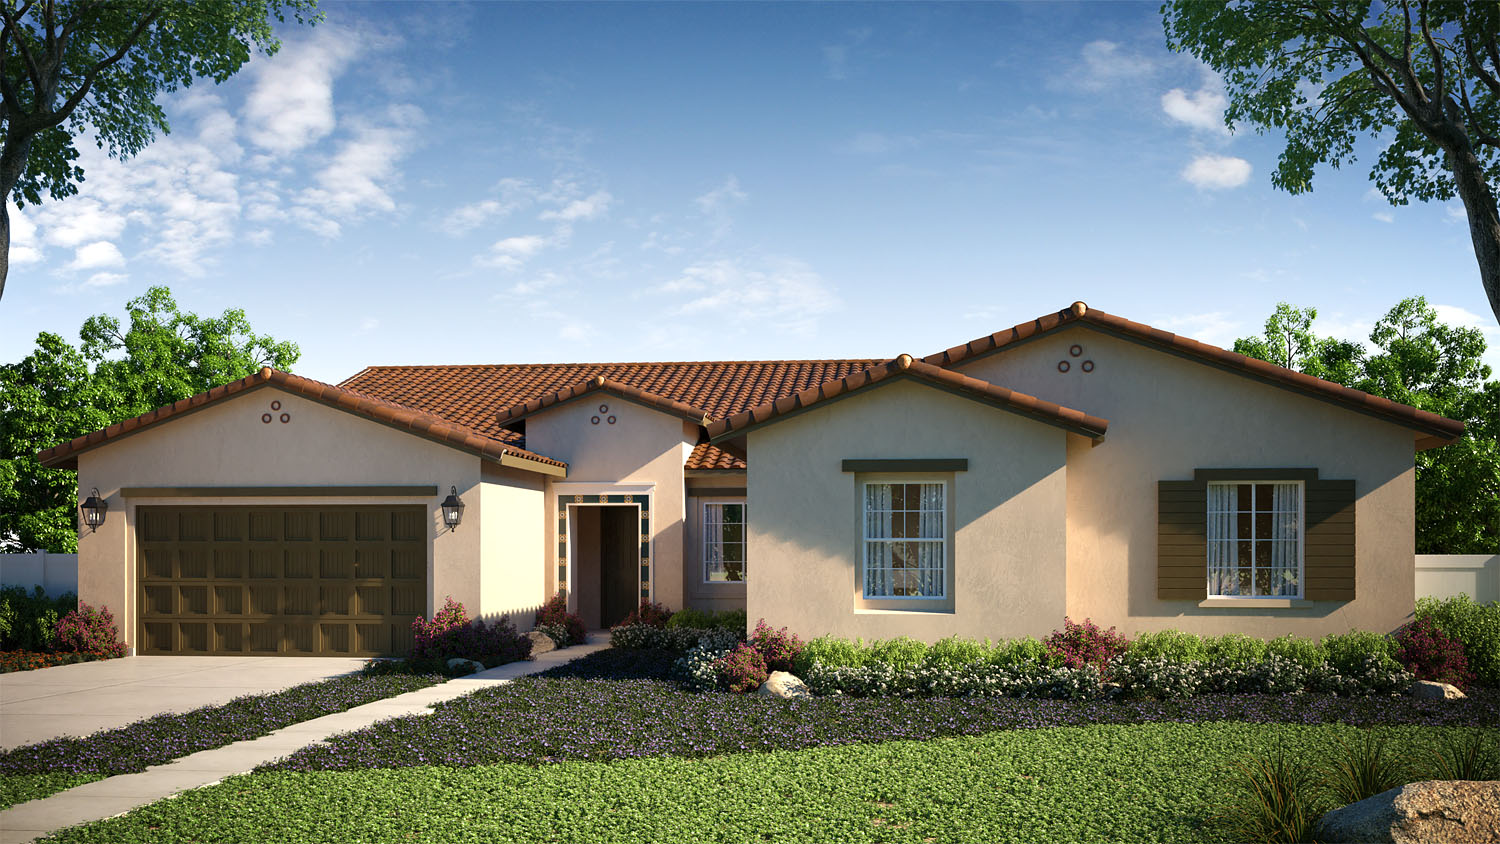 tramonte citrus heights riverside brand new homes city ventures rh cityventures com